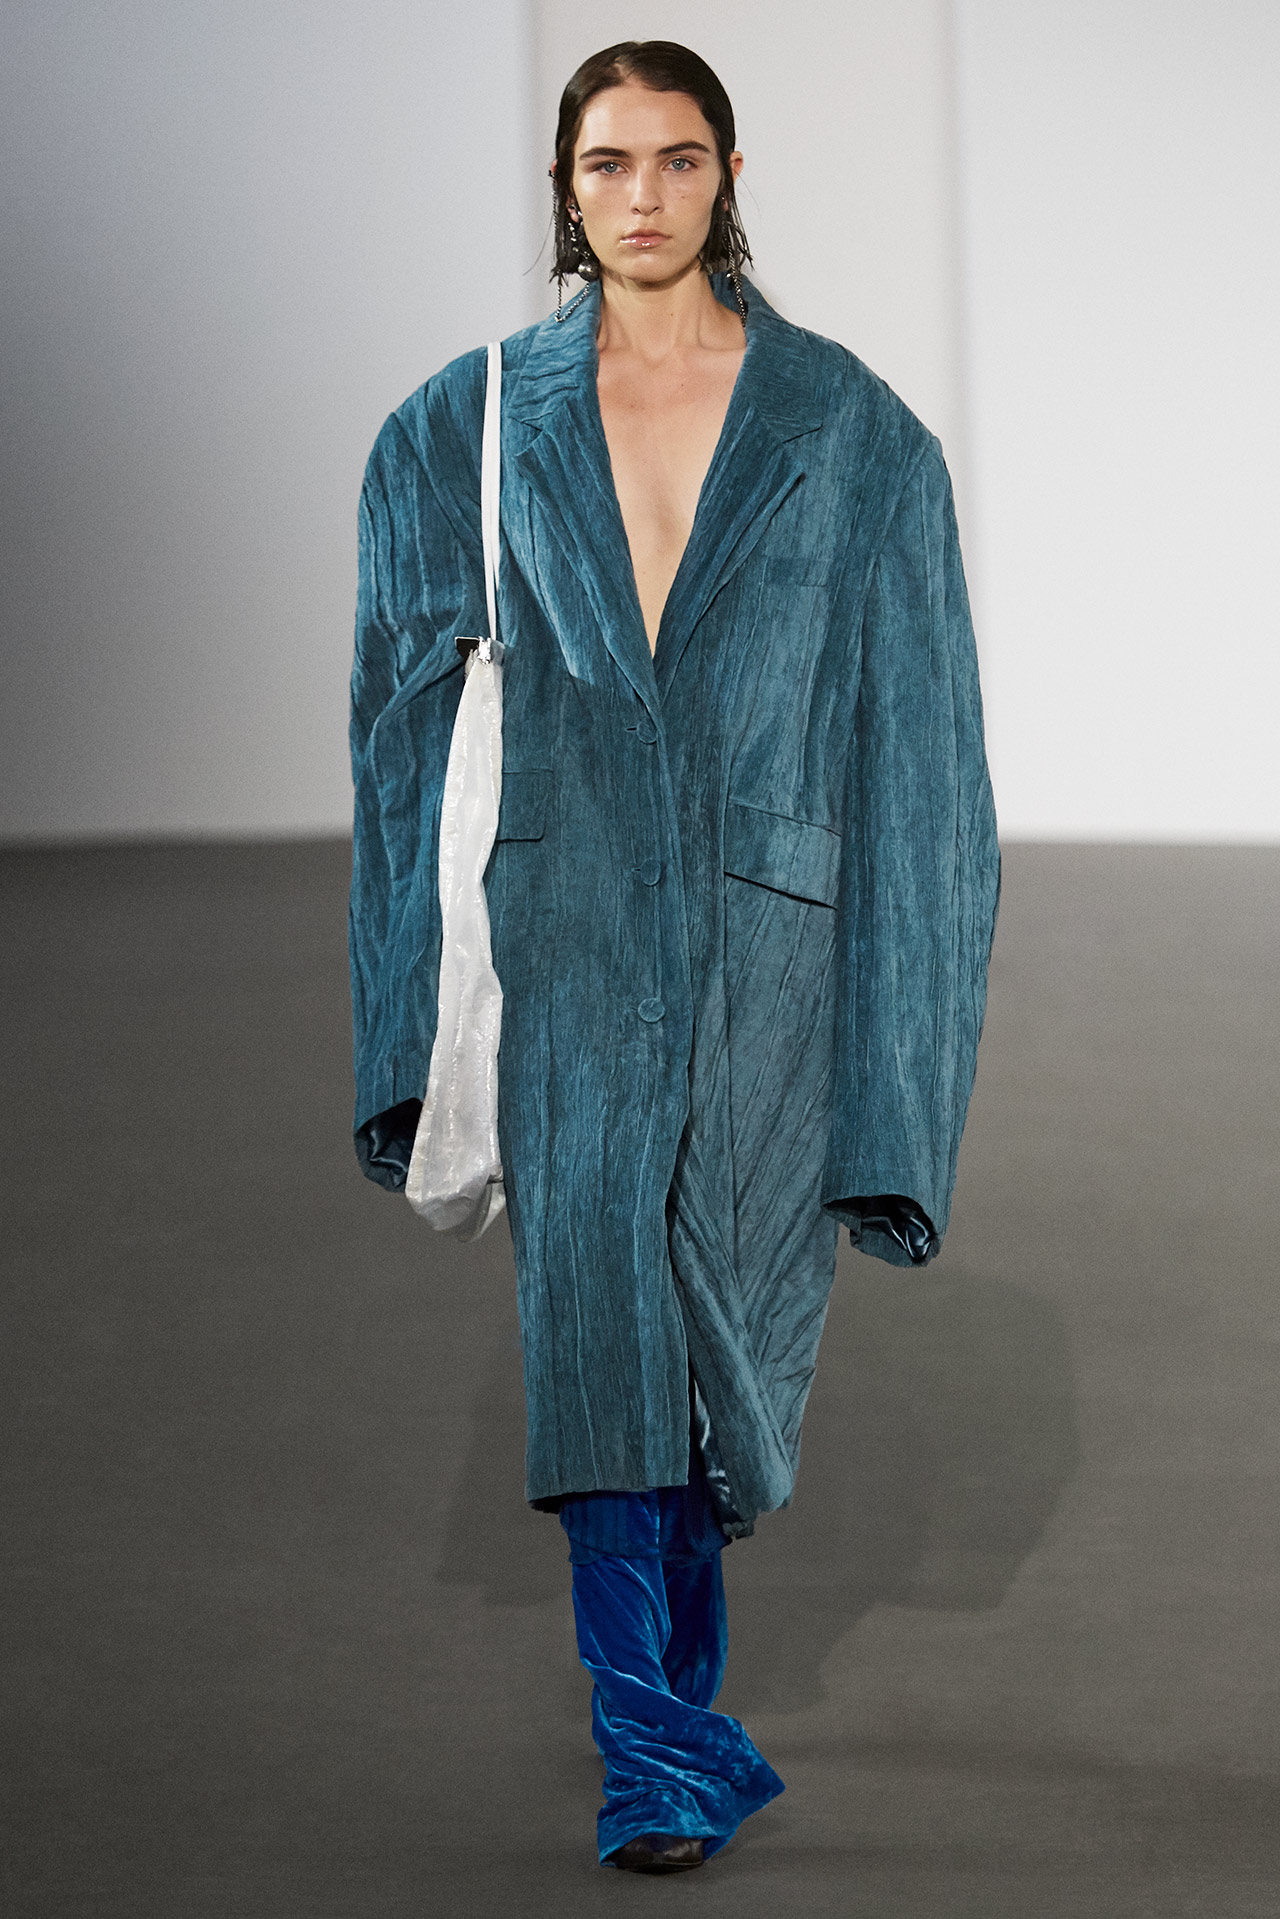 Look Fall/Winter 2020, image 31